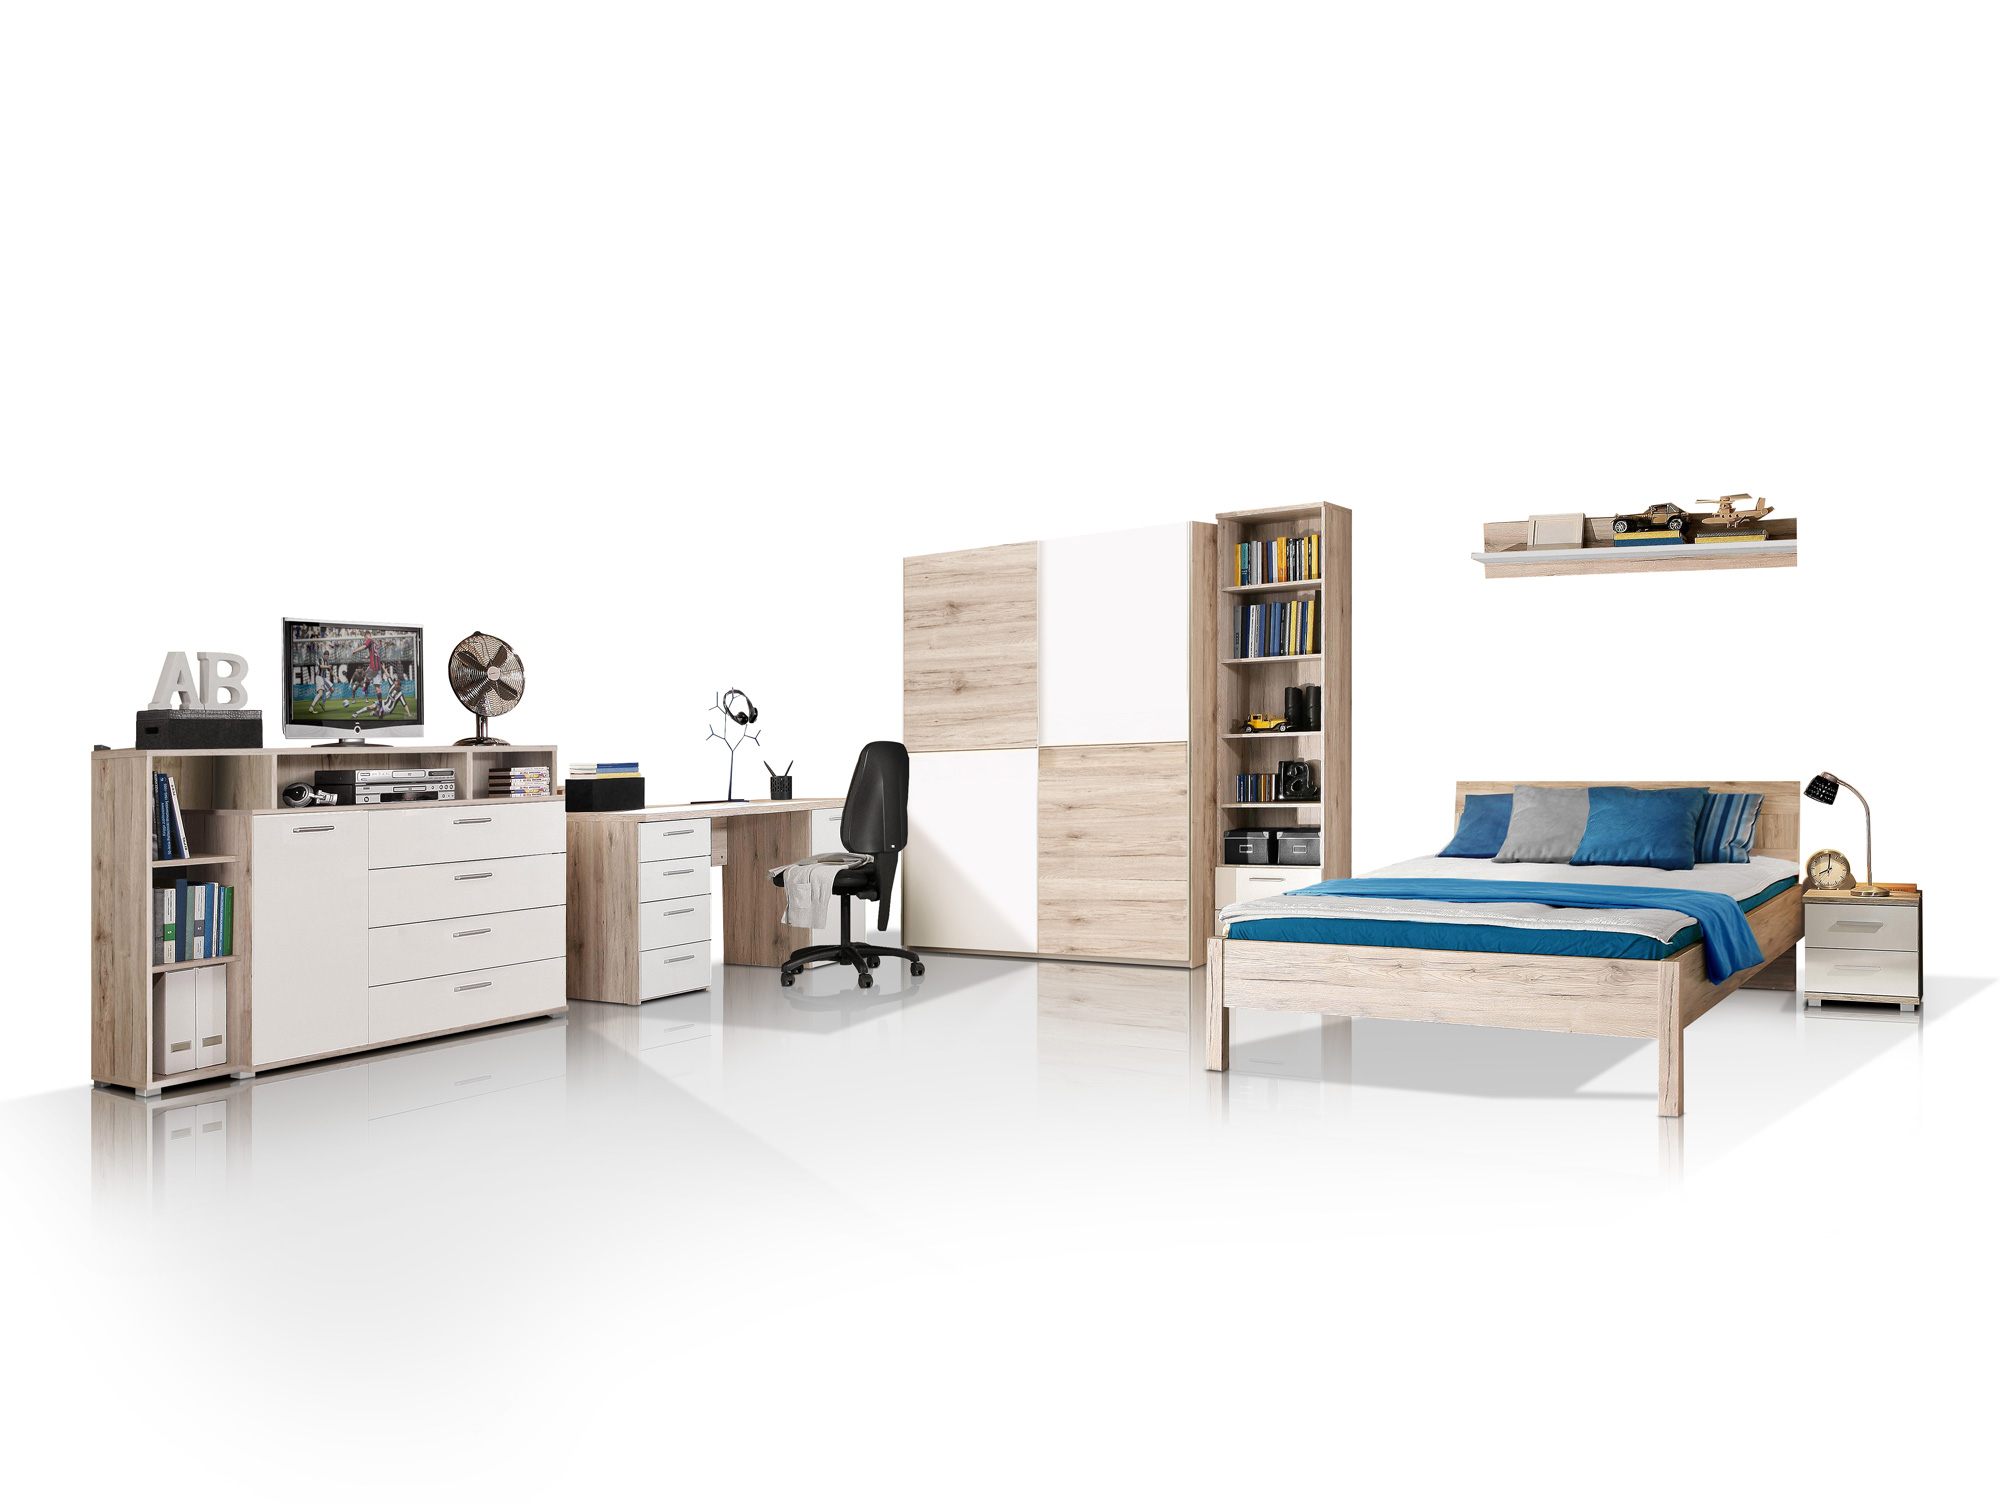 jugendbett weiss g nstig kaufen. Black Bedroom Furniture Sets. Home Design Ideas